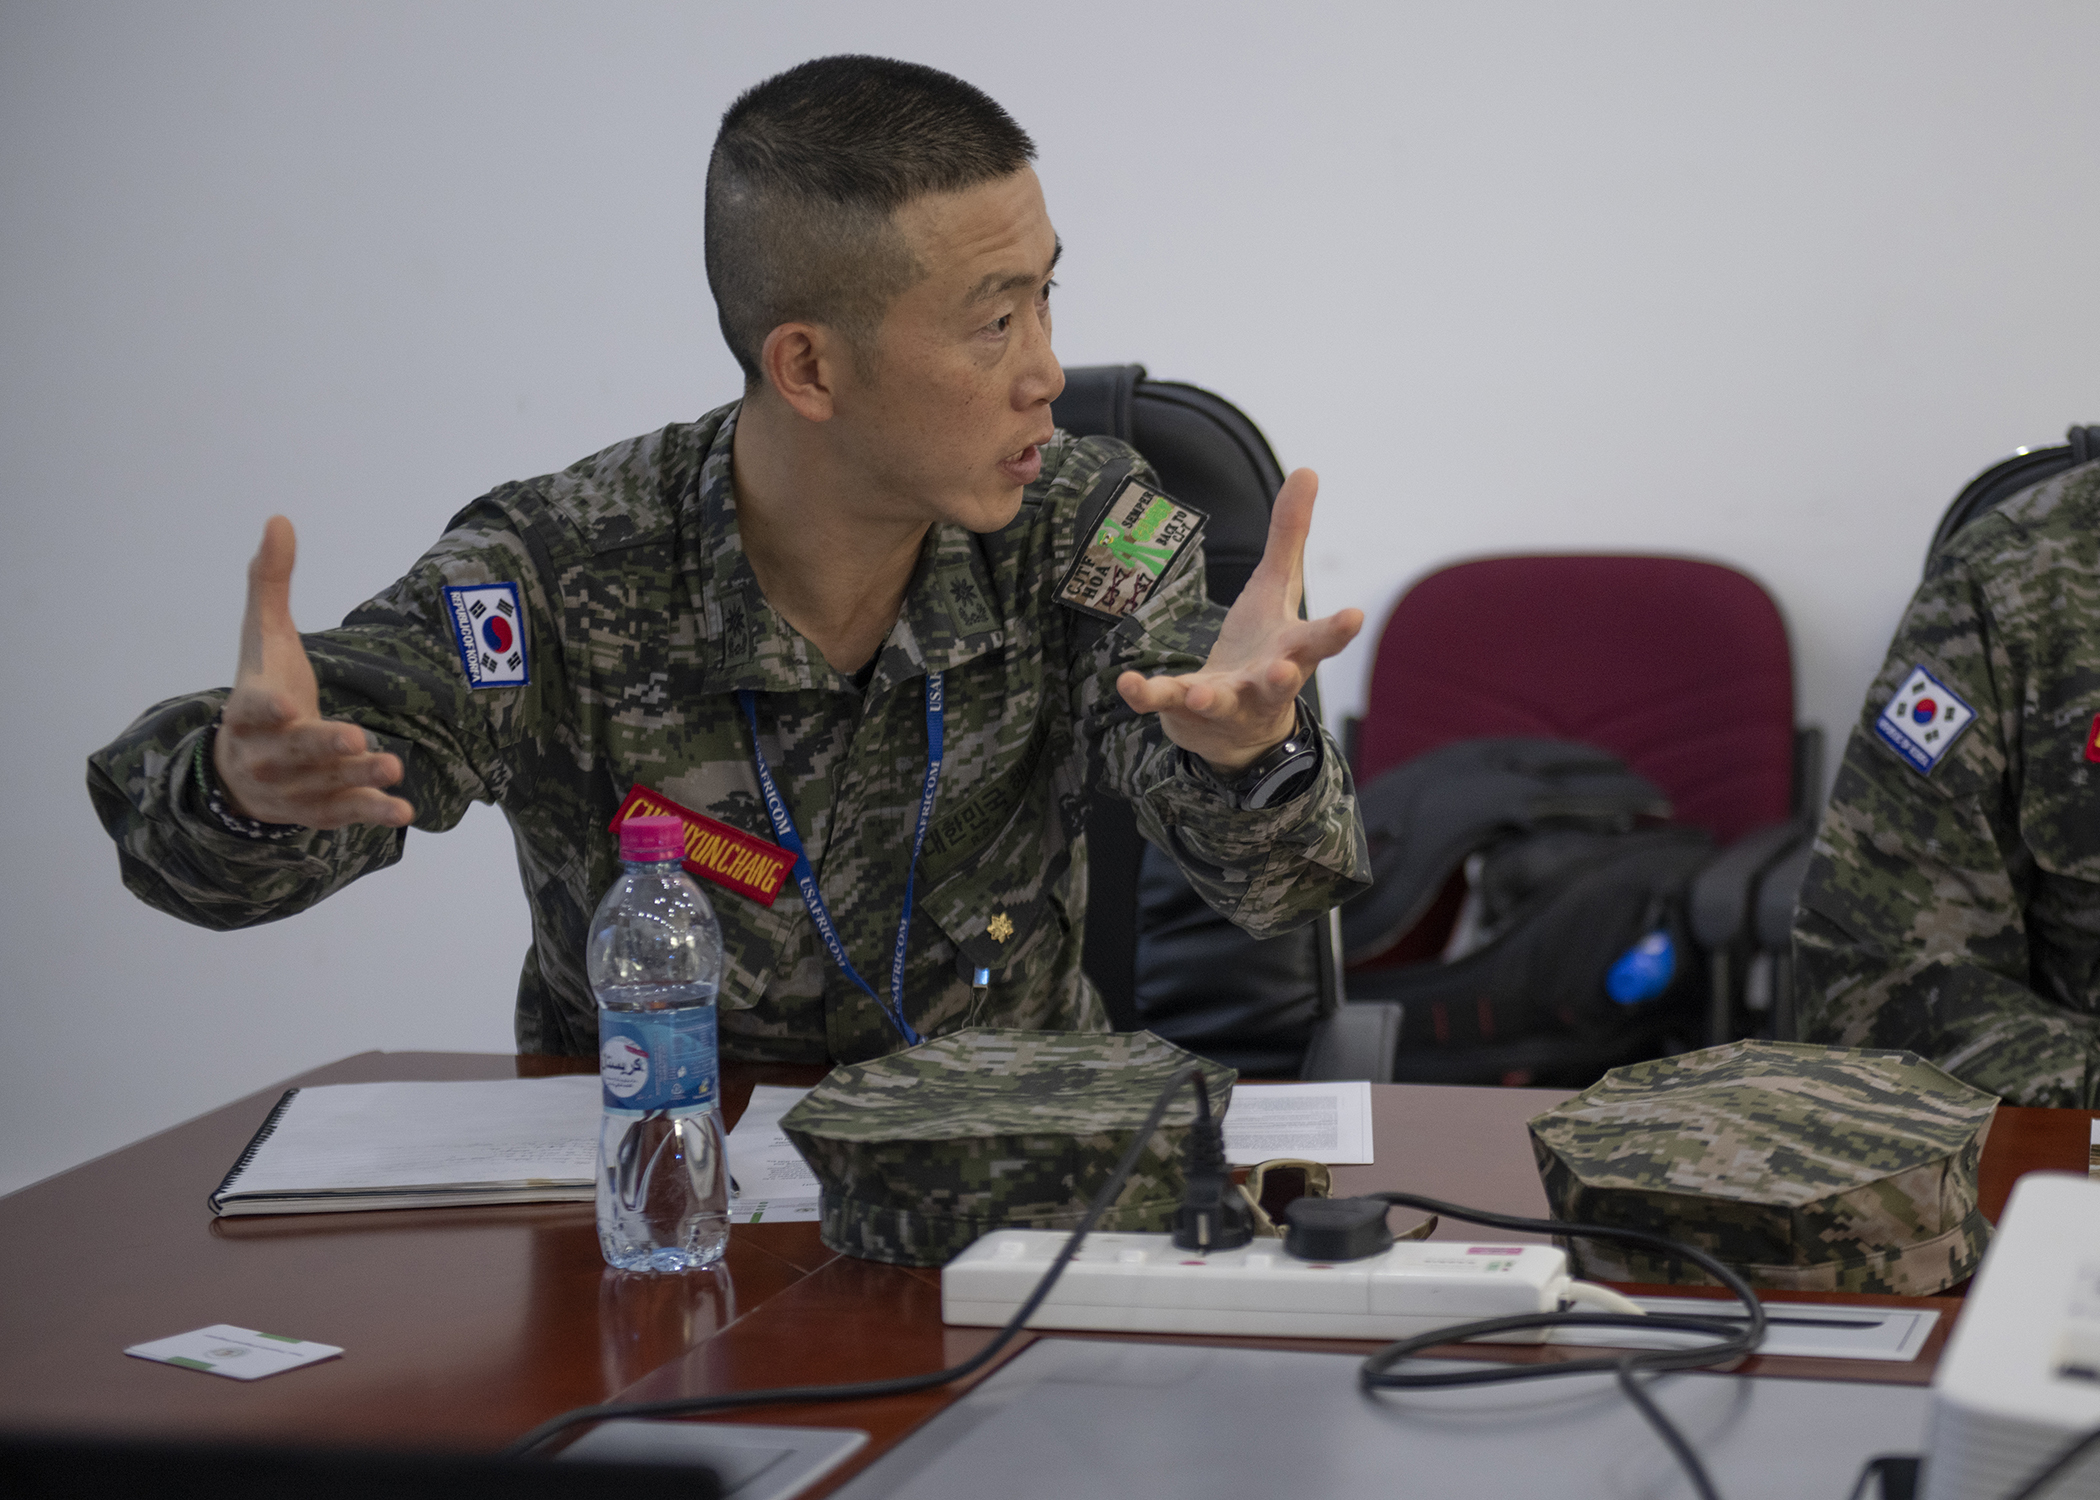 Republic of Korea Marine Maj. Hyunchang Choi, a foreign liaison officer (FLO) assigned to Combined Joint Task Force-Horn of Africa (CJTF-HOA), starts a discussion during the first-ever formal meeting between FLOs and U.S. military members assigned to CJTF-HOA, and officials from the Intergovernmental Authority on Development in Djibouti, Jan. 16, 2019. The purpose of the meeting was for both parties to familiarize themselves with each other's missions and goals through a short information exchange and set the stance for future meetings. (U.S. Air Force photo by Tech. Sgt. Shawn Nickel)